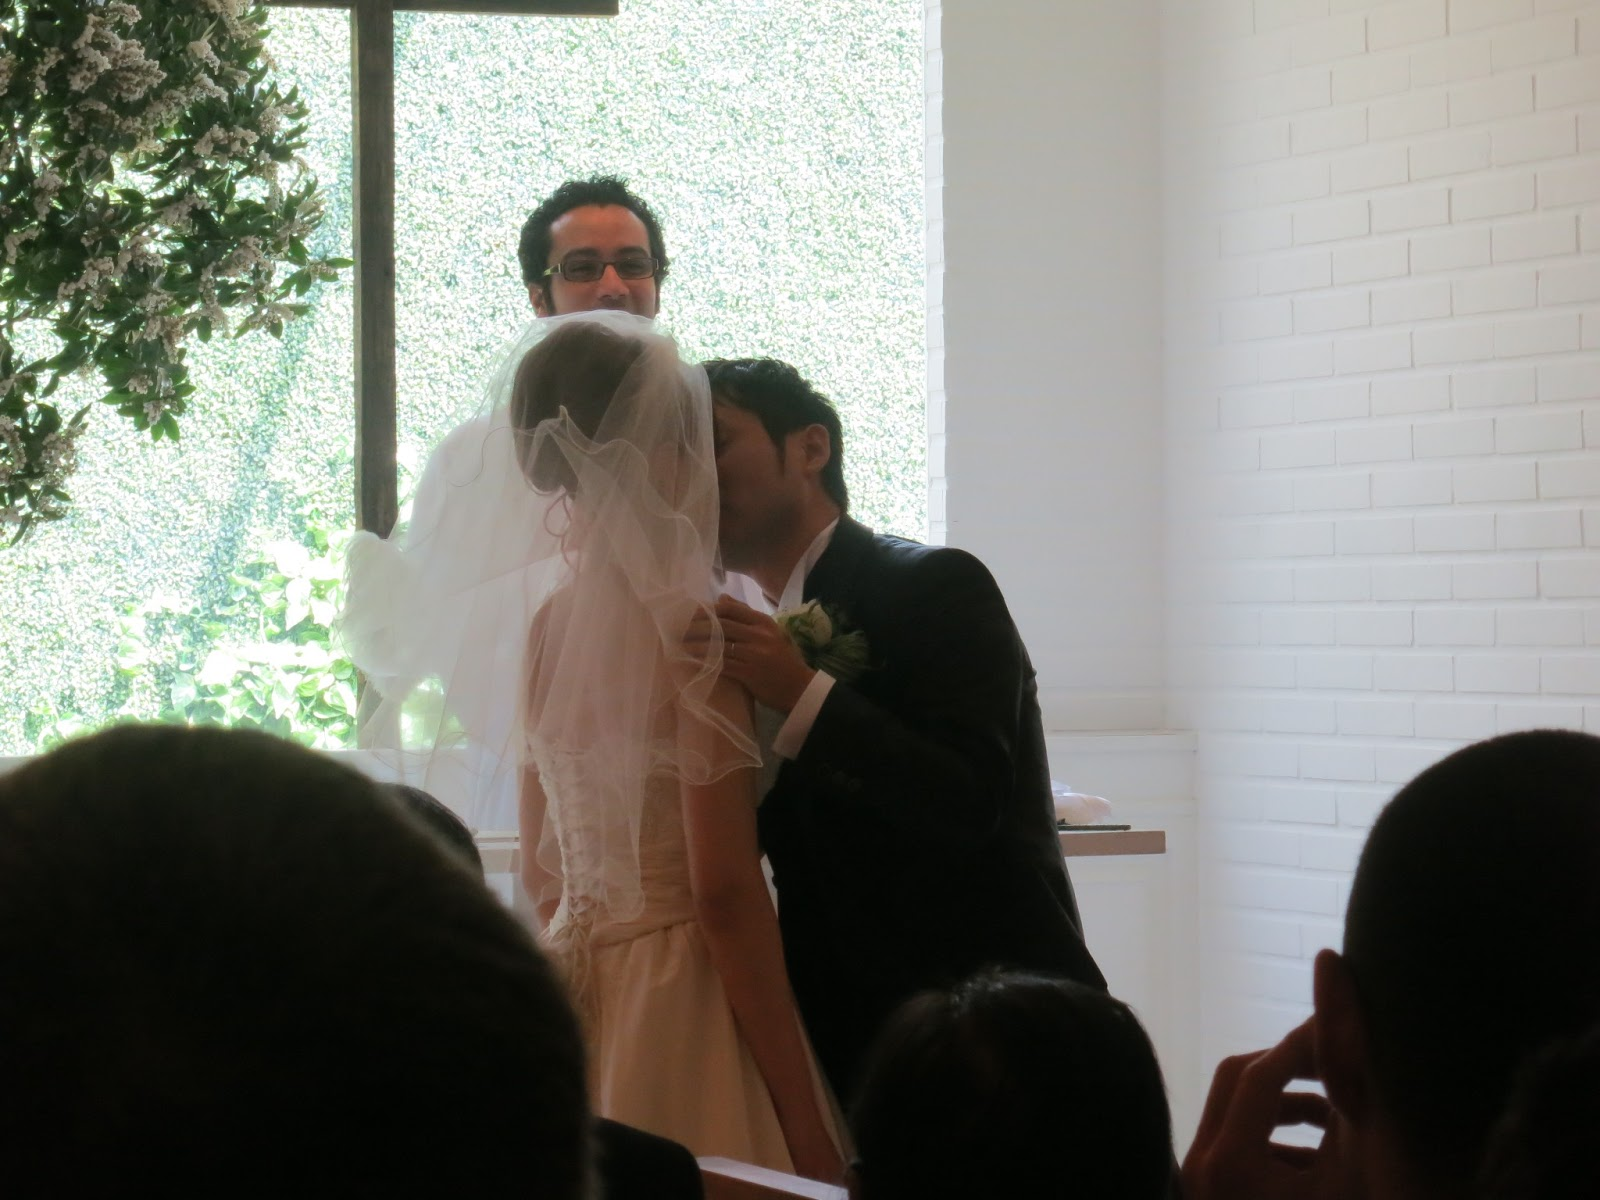 The Ceremony Was A Nice Western Style Japanese Wedding There Was A Ceremony With A Foreign Priest Who Spoke Japanese English And French During The